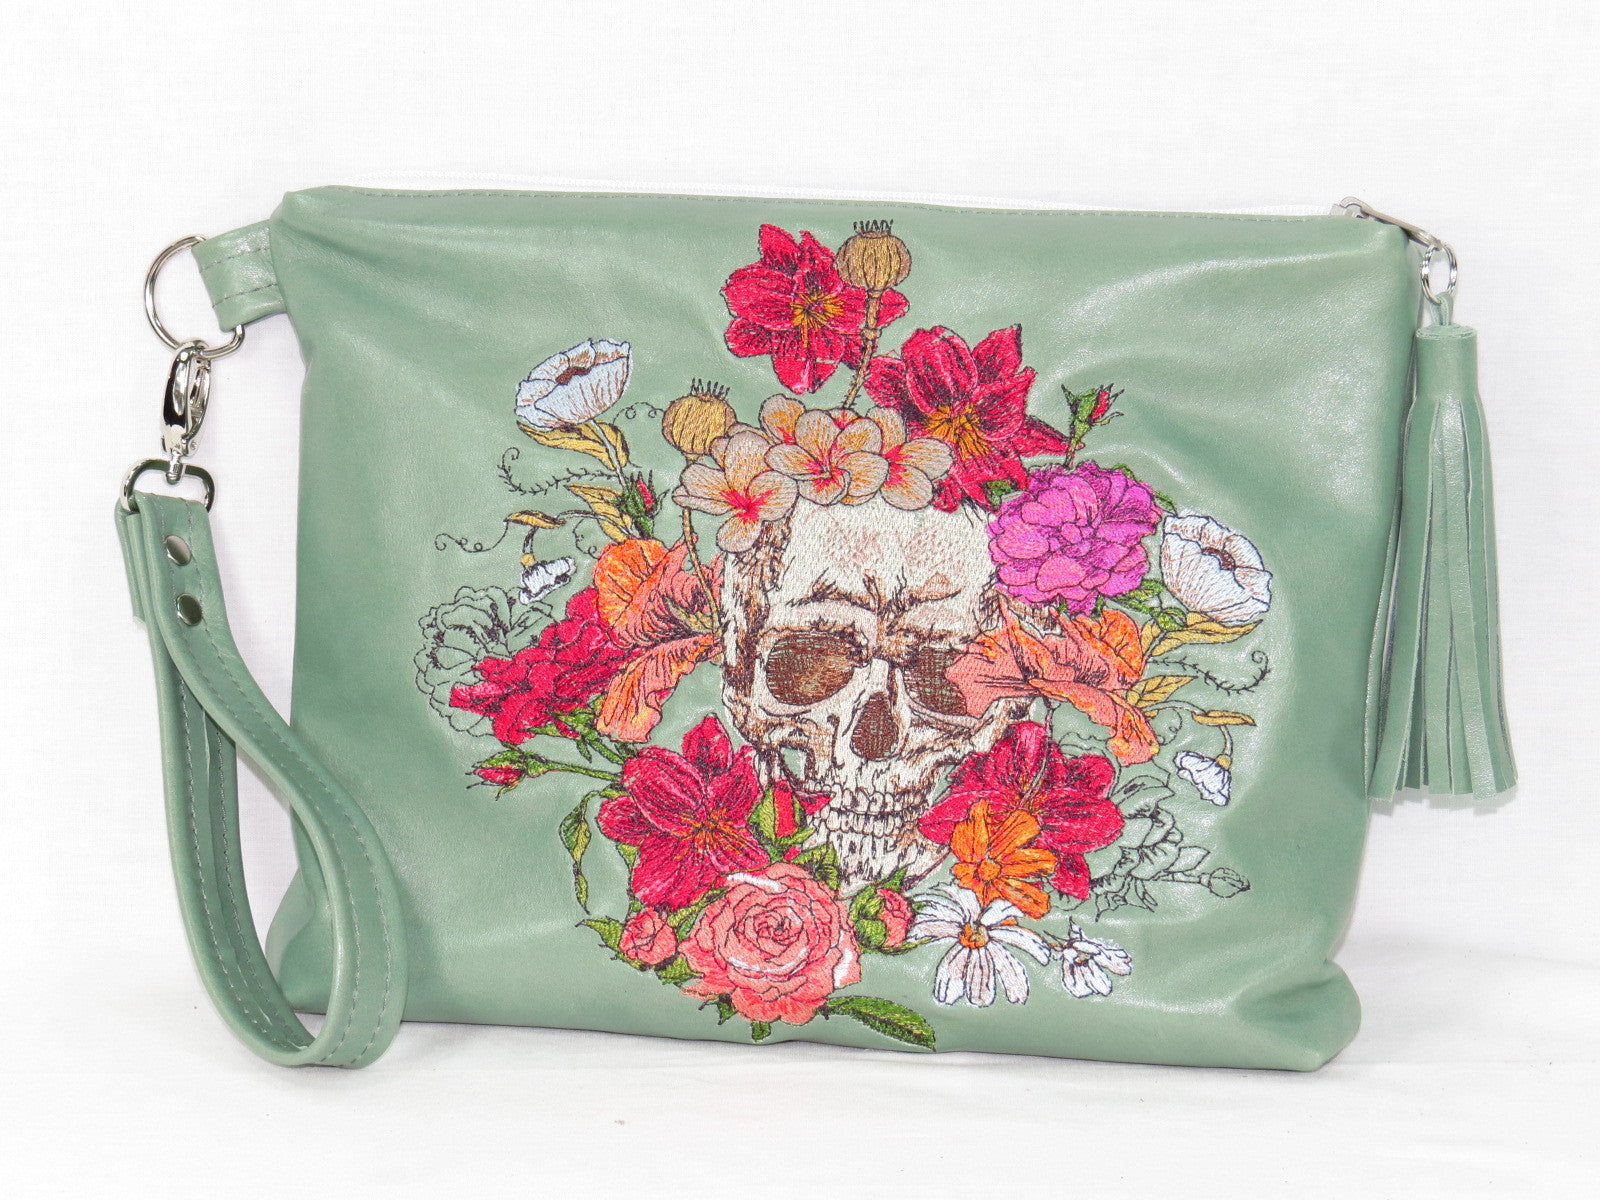 Bed of Flowers Mint Green Zipper Clutch